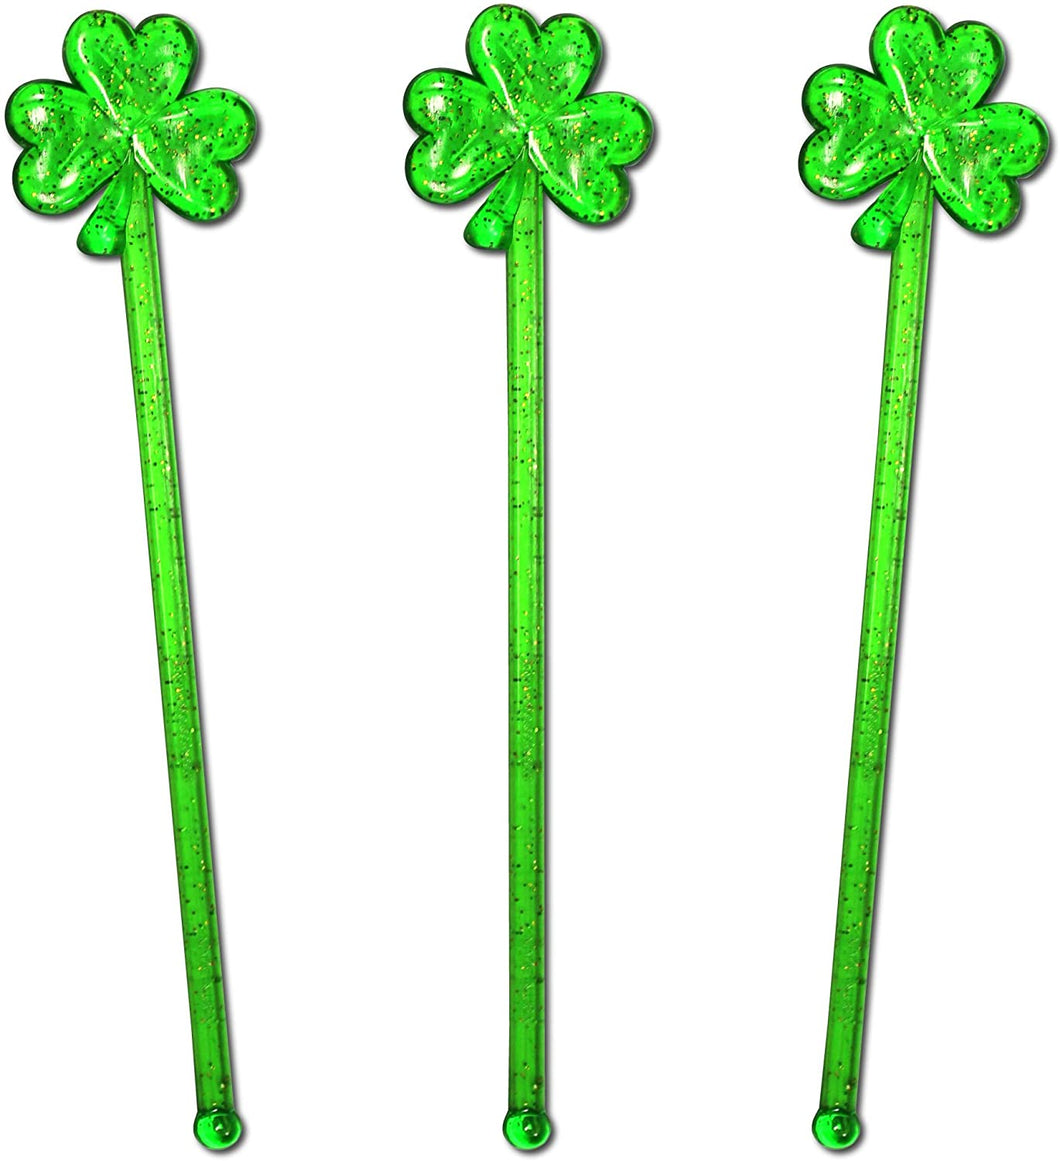 Royer Puffy Shamrock Swizzle Sticks, Stir Sticks, Cocktail Stirrers for St. Patricks Day - Green With Gold Glitter, 6 Inch, Set of 24, Made in USA